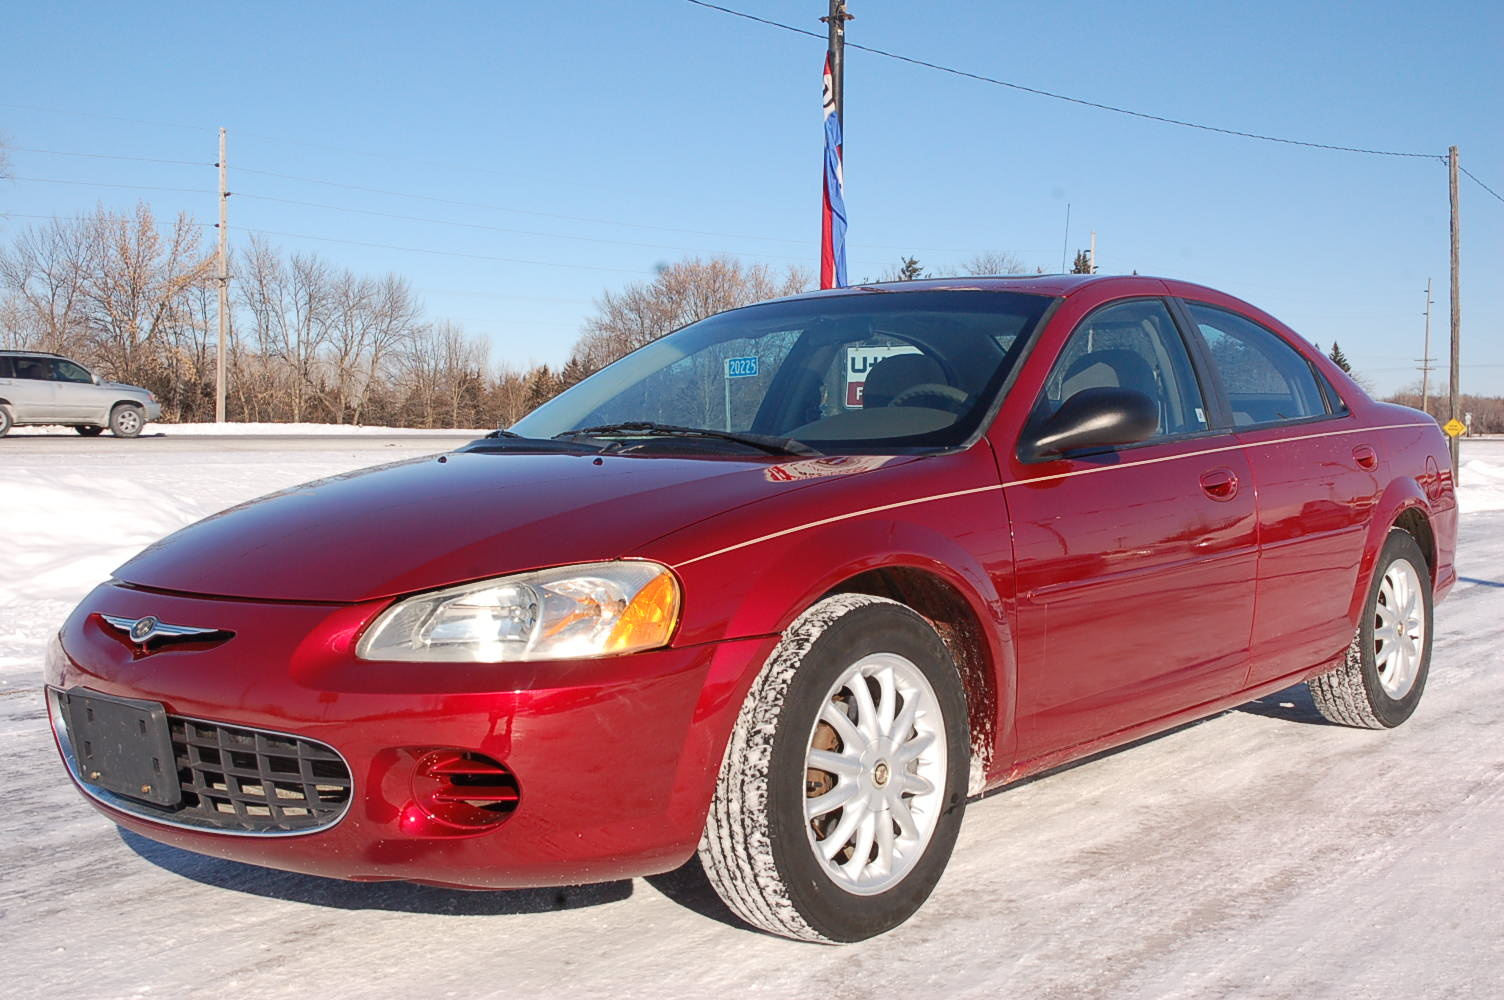 Ford Dealers Near Me 2002 Chrysler Sebring - Pictures - CarGurus